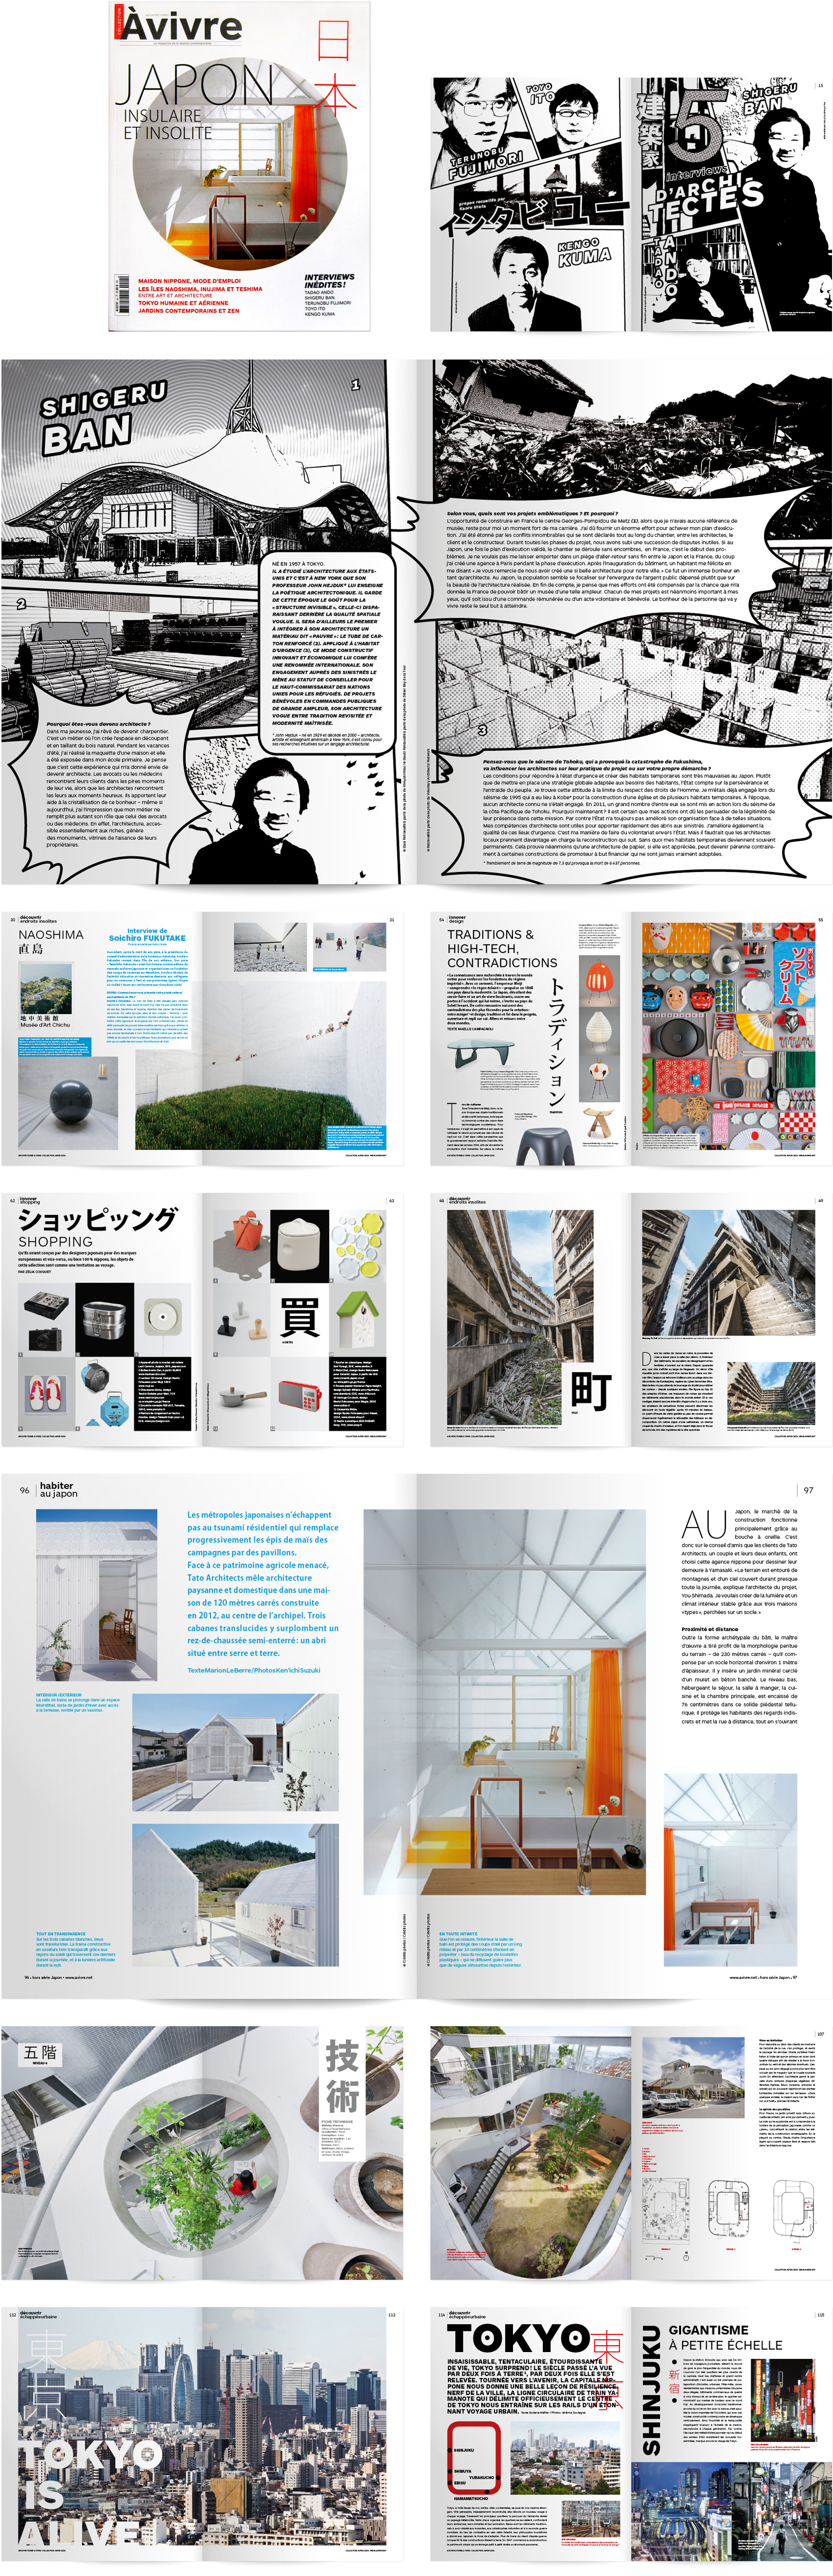 développé du magazine Architectures à vivre Collection Japon